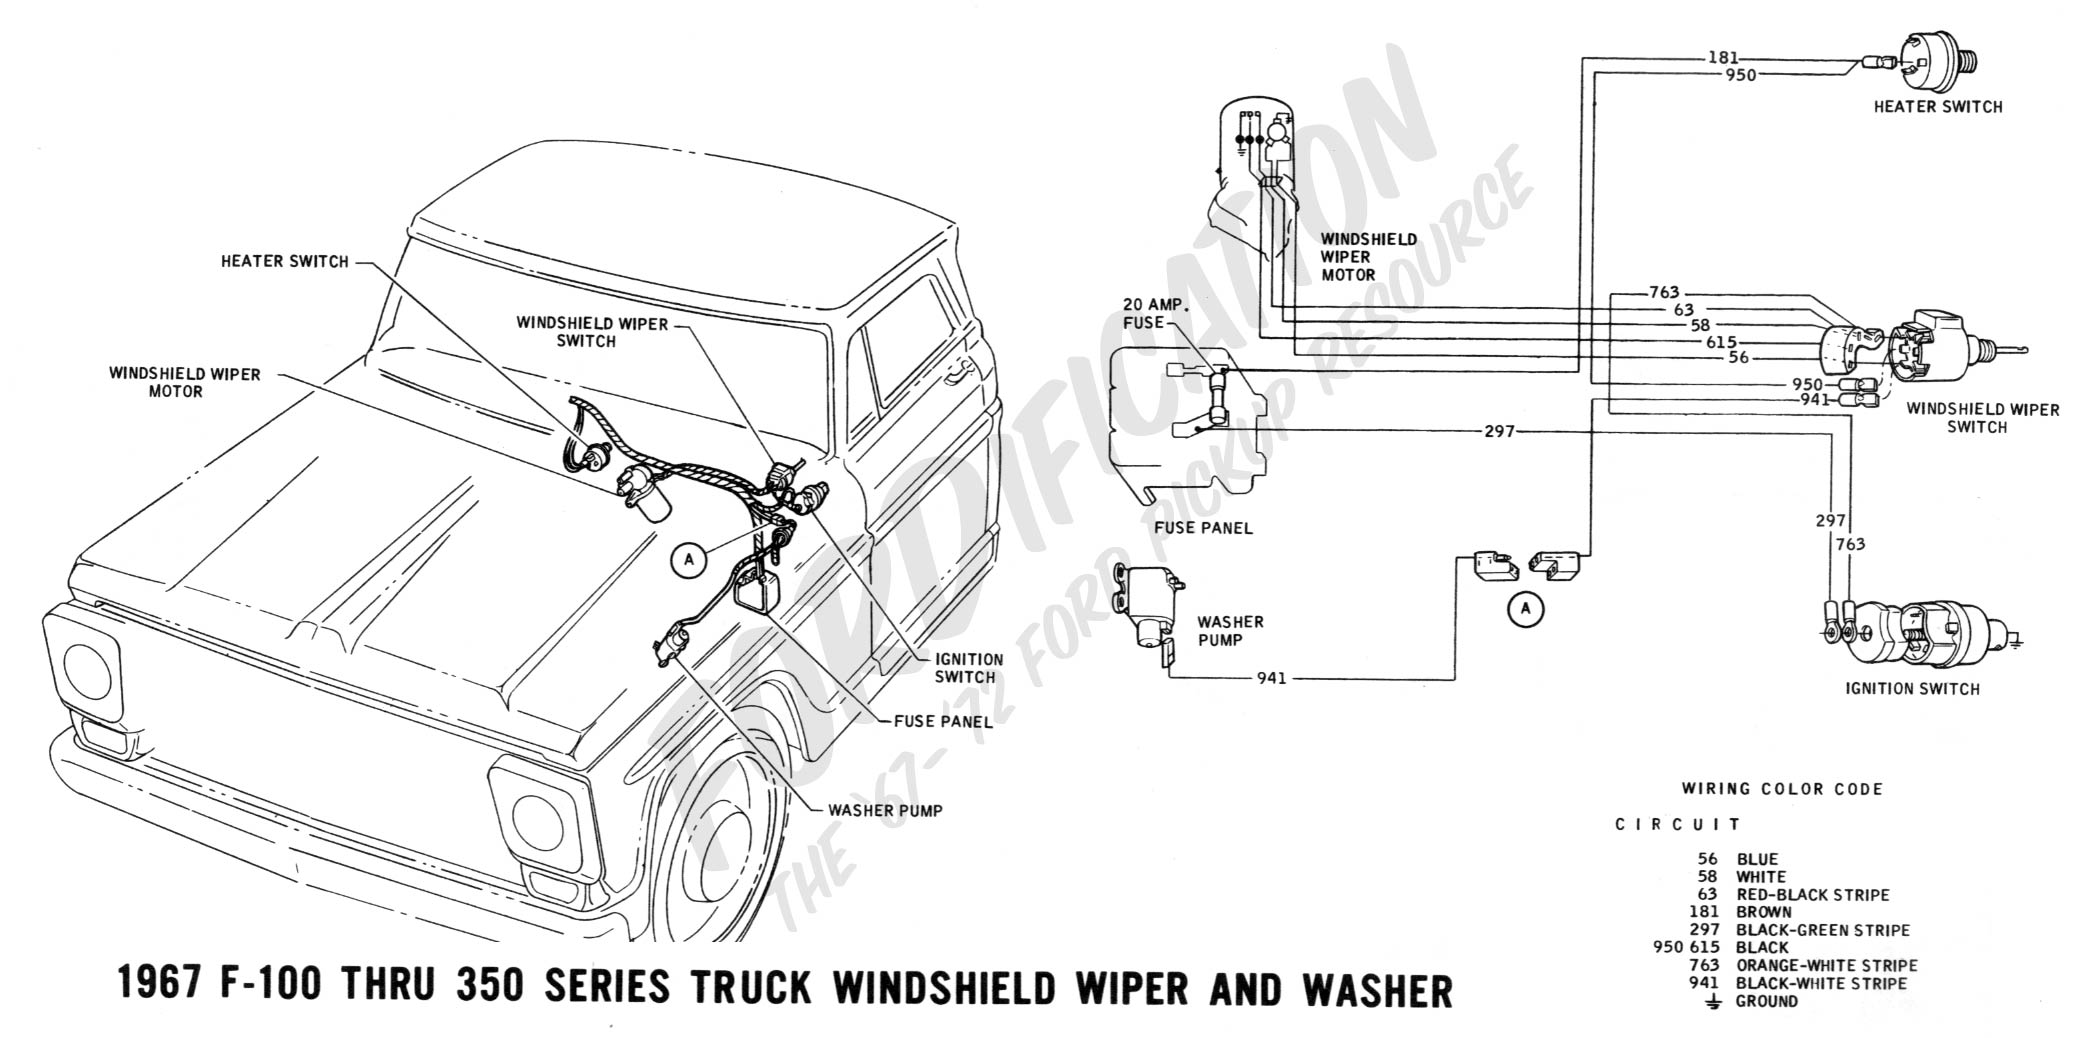 1967 ford f150 wiring diagram ford truck technical drawings and schematics - section h - wiring diagrams 1967 ford f250 wiring diagram